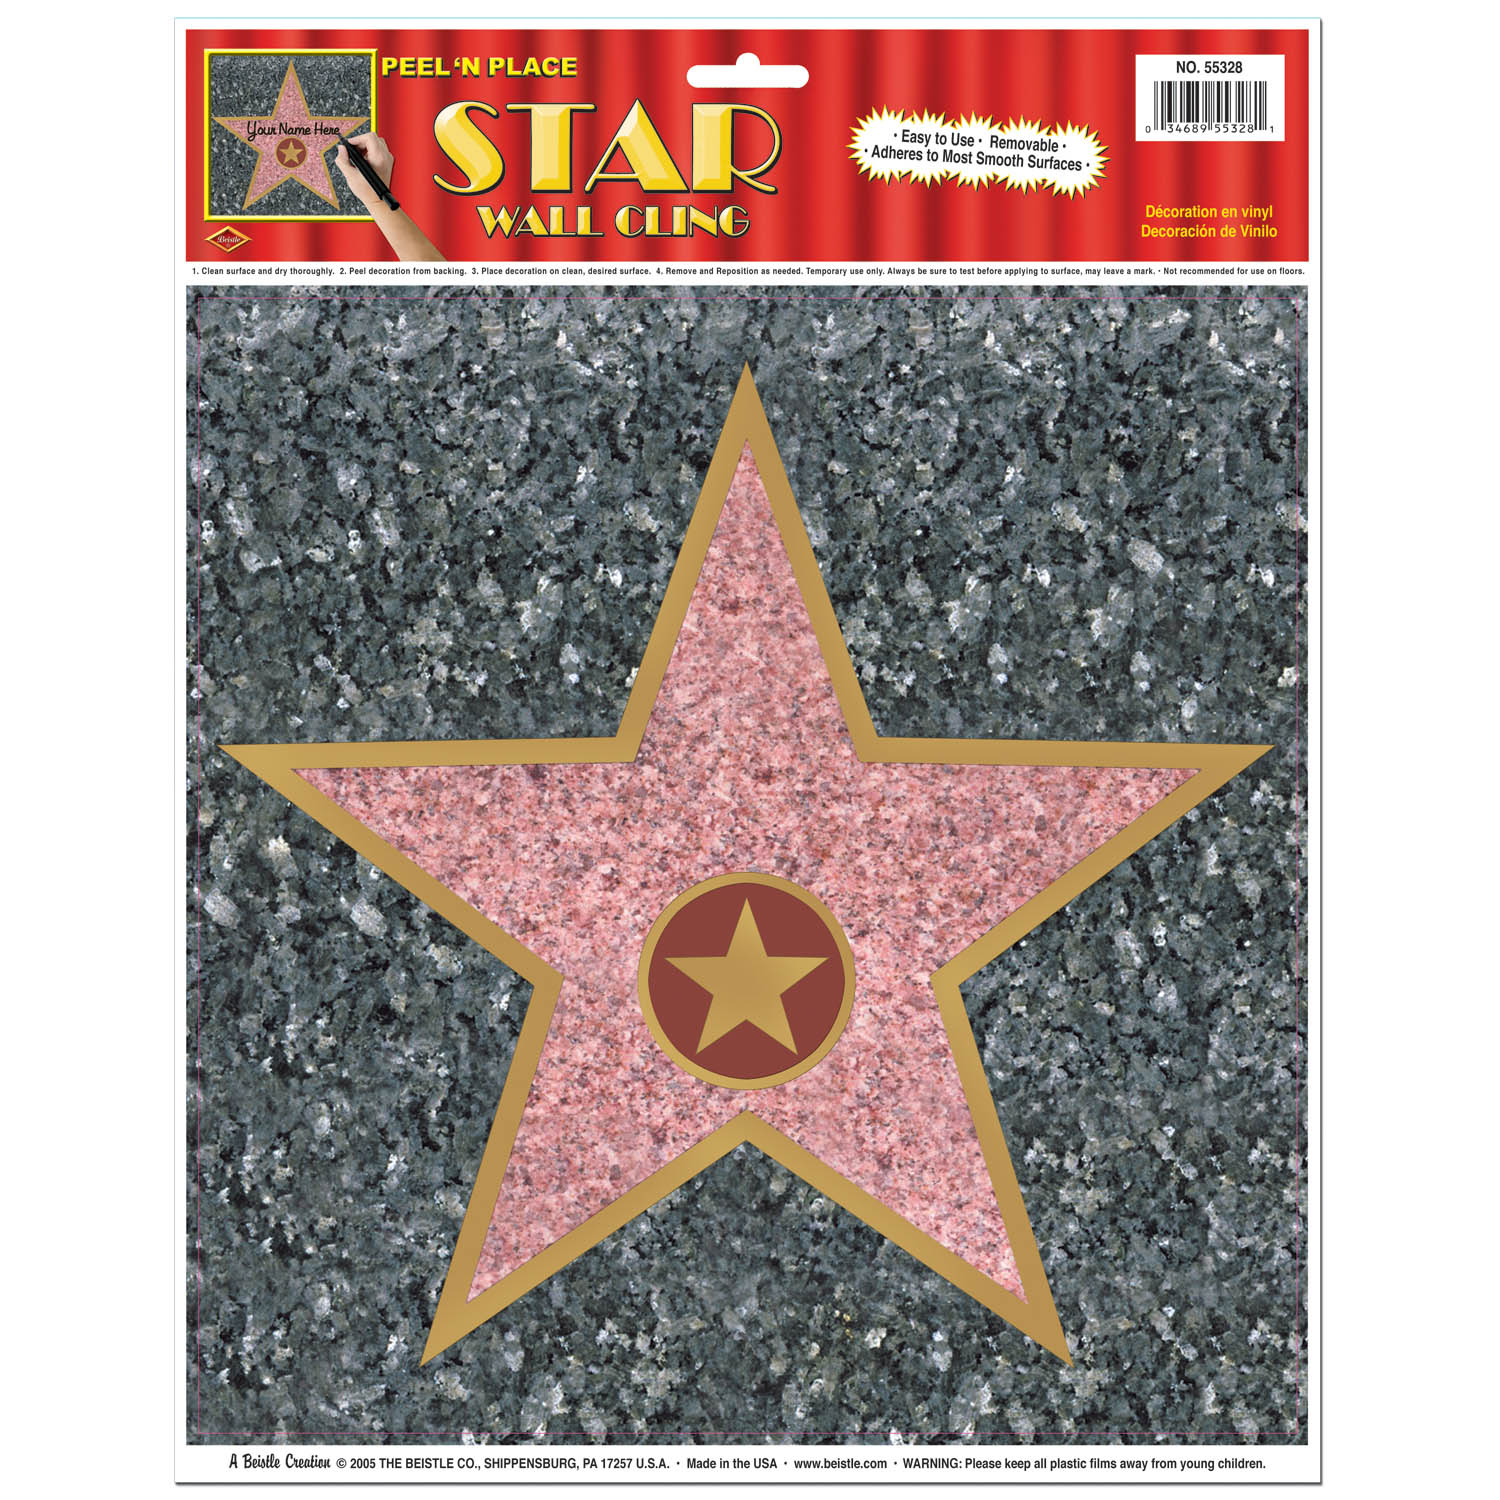 Star Peel-N-Place (Pack of 12) Star Peel-N-Place, party favor, hollywood, new years eve, halloween, wholesale, inexpensive, bulk